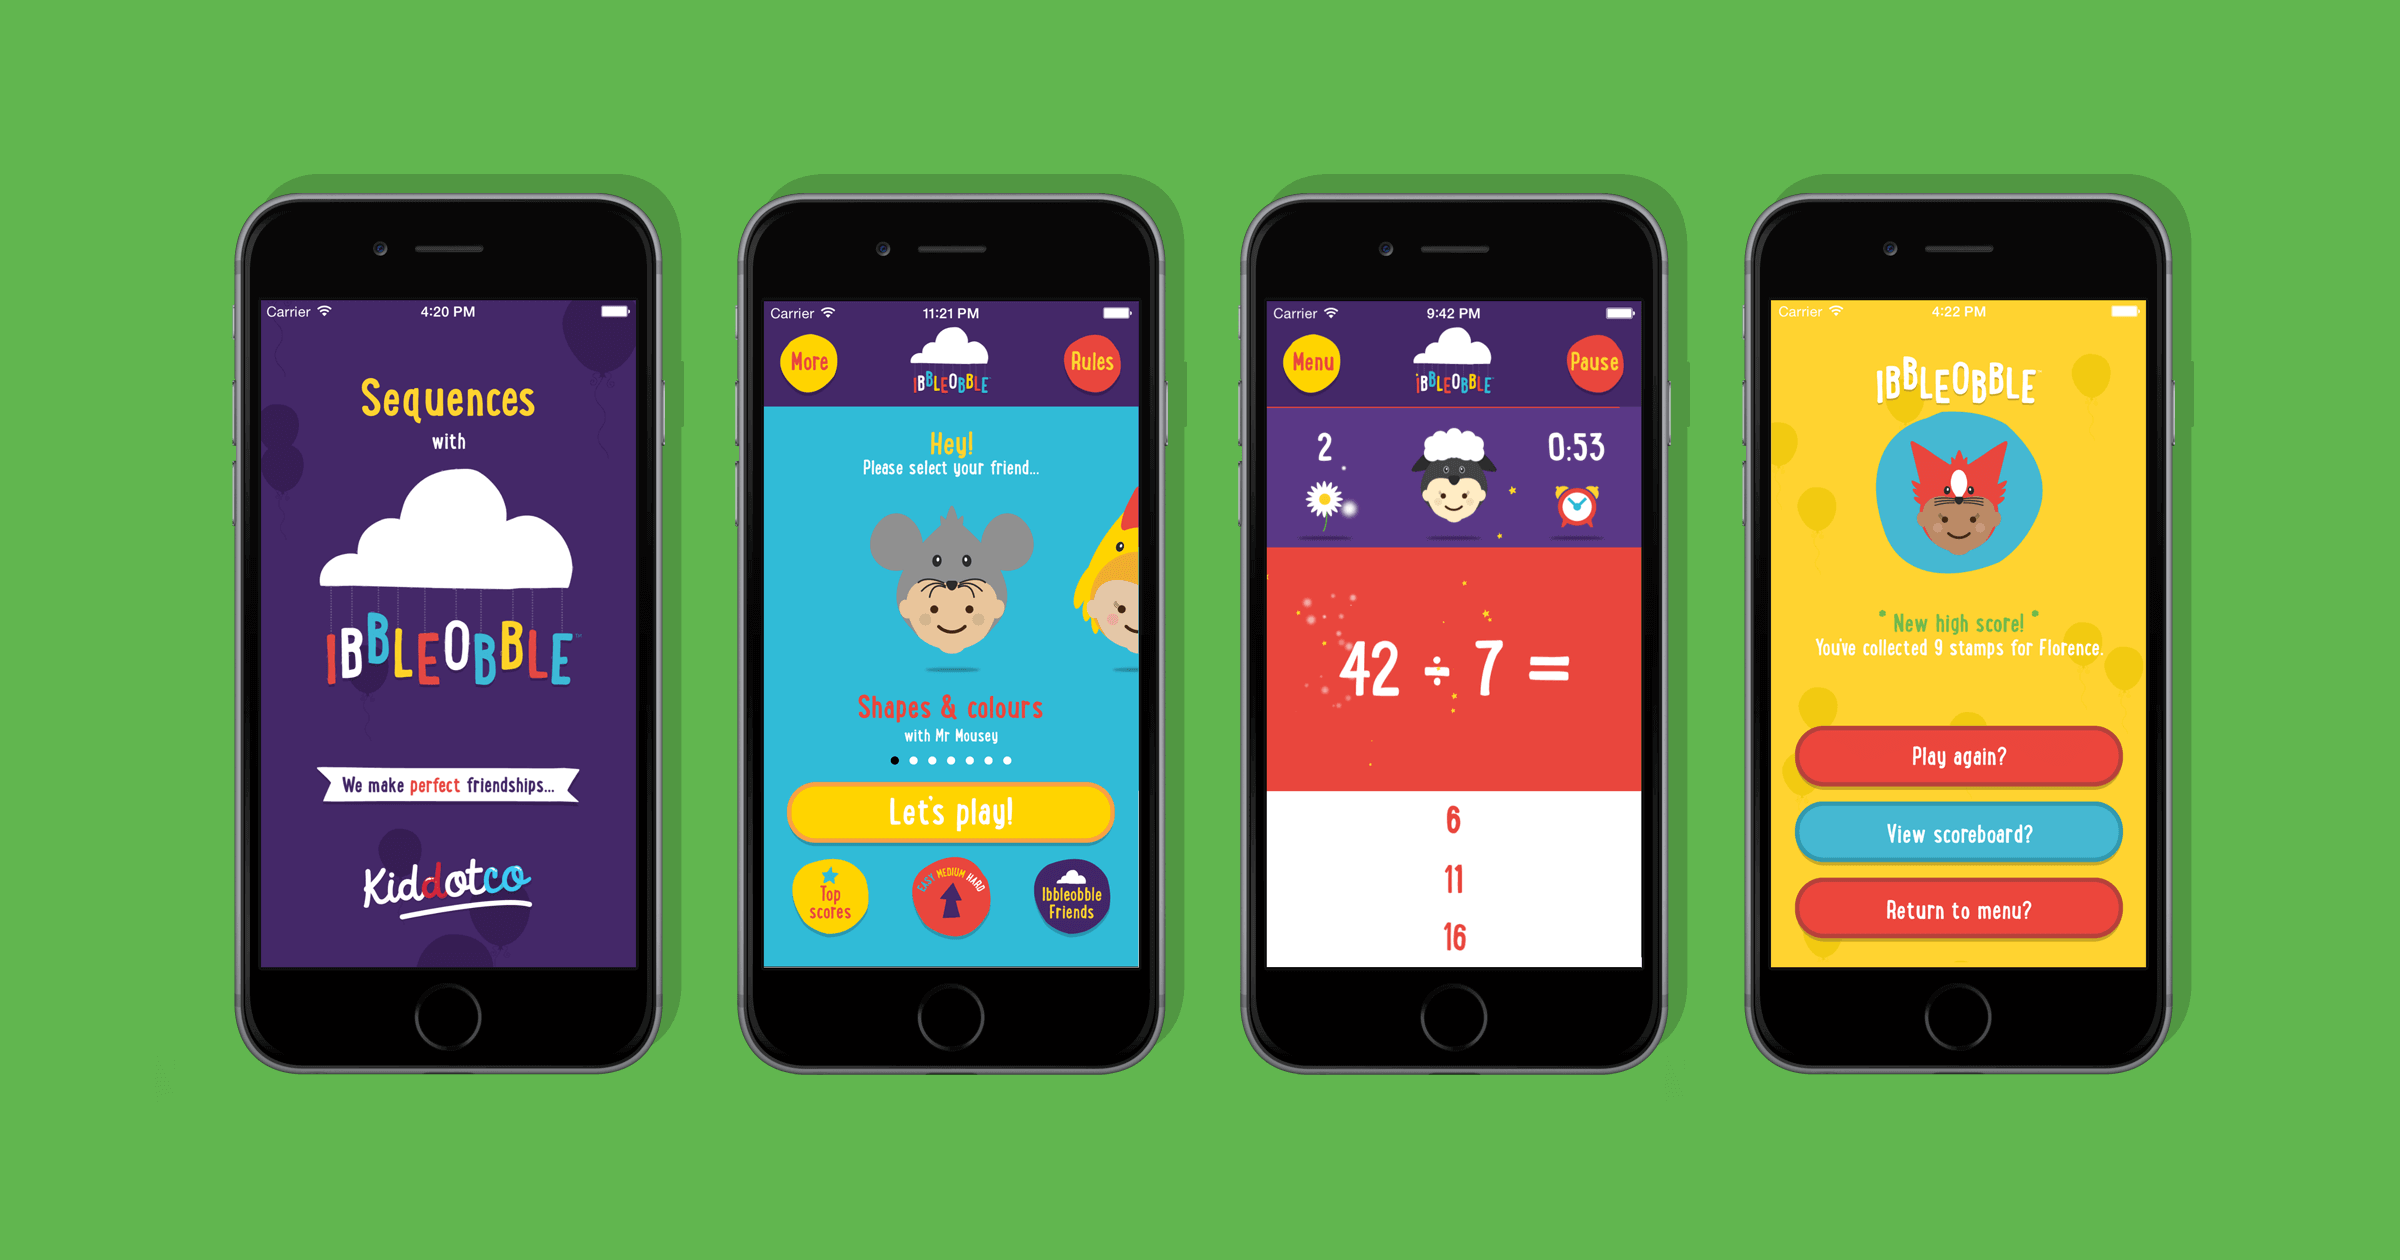 Ibbleobble user Interface and gameplay